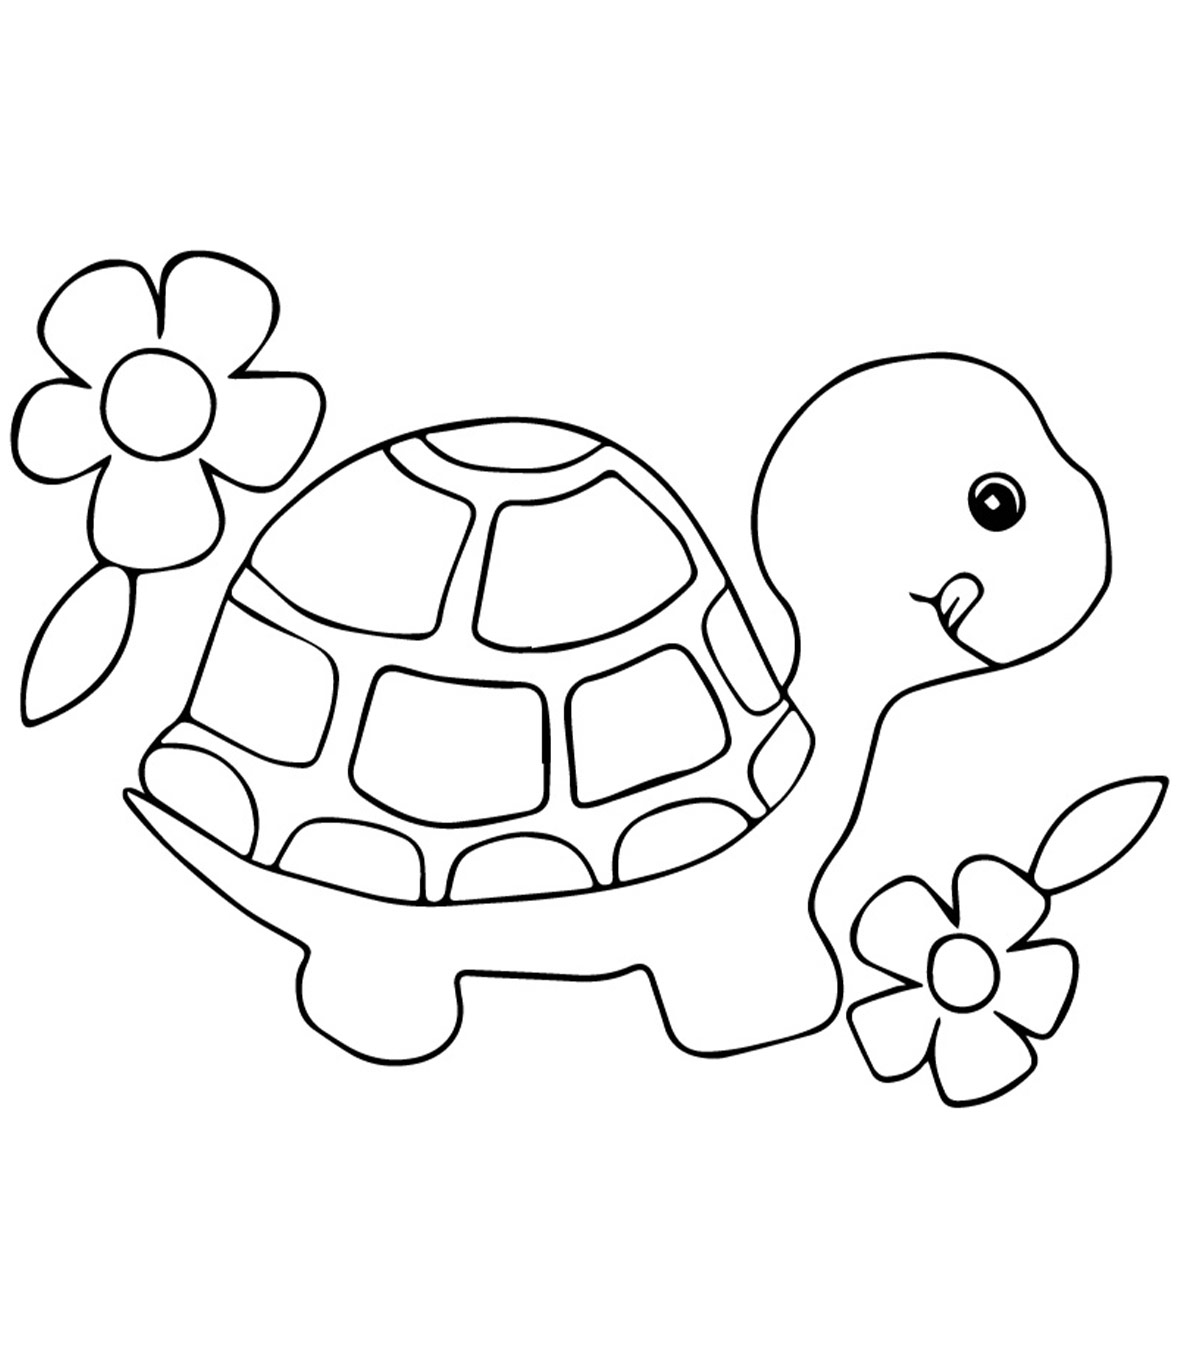 photo regarding Printable Turtle Coloring Pages titled Ultimate 20 Free of charge Printable Turtle Coloring Webpages On the net